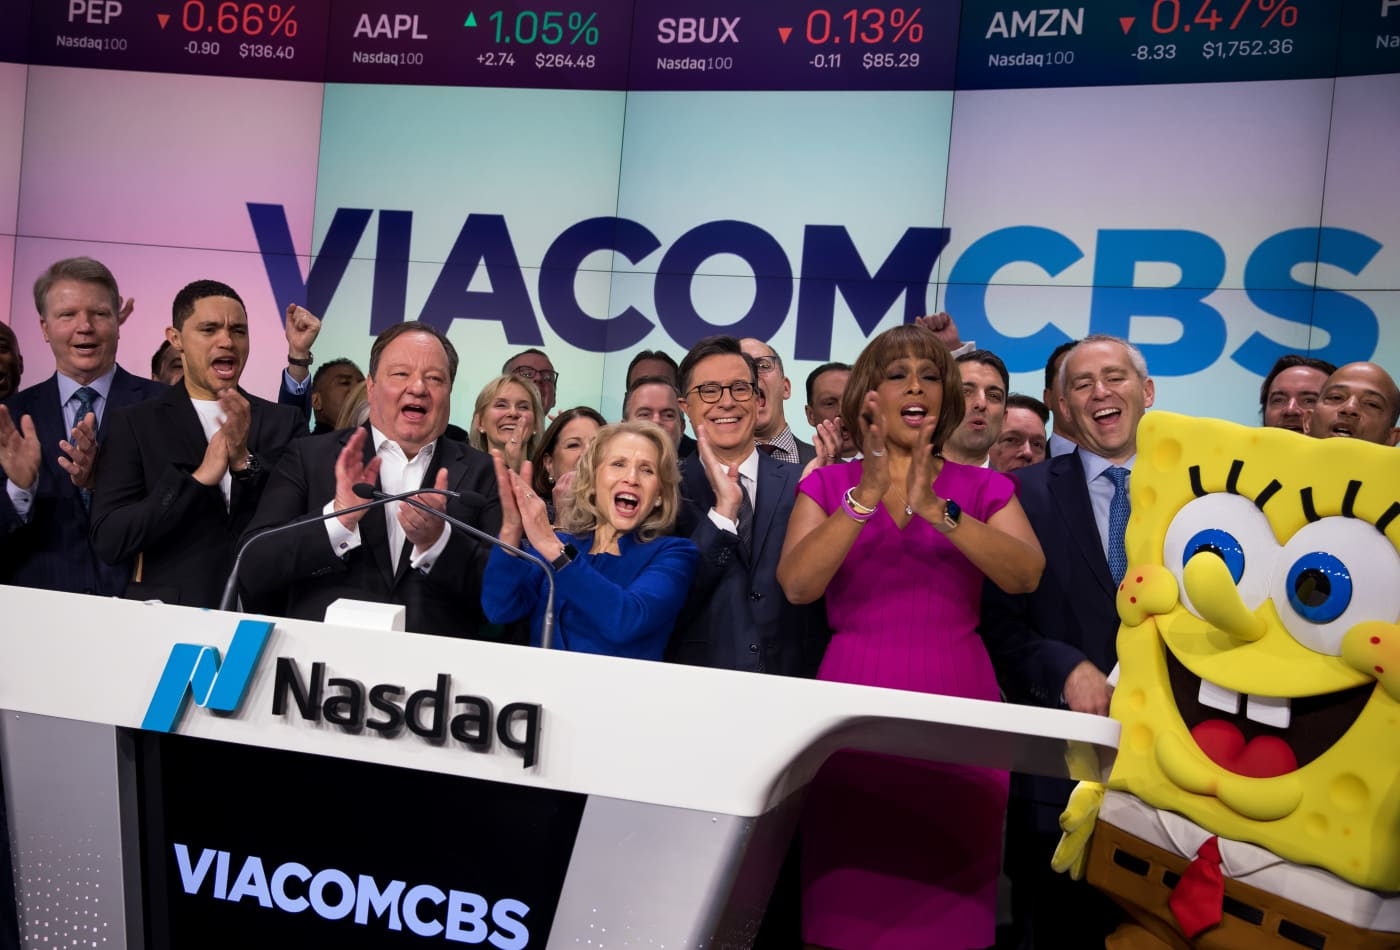 ViacomCBS to launch new streaming service blending CBS All Access with Paramount films, Viacom channels